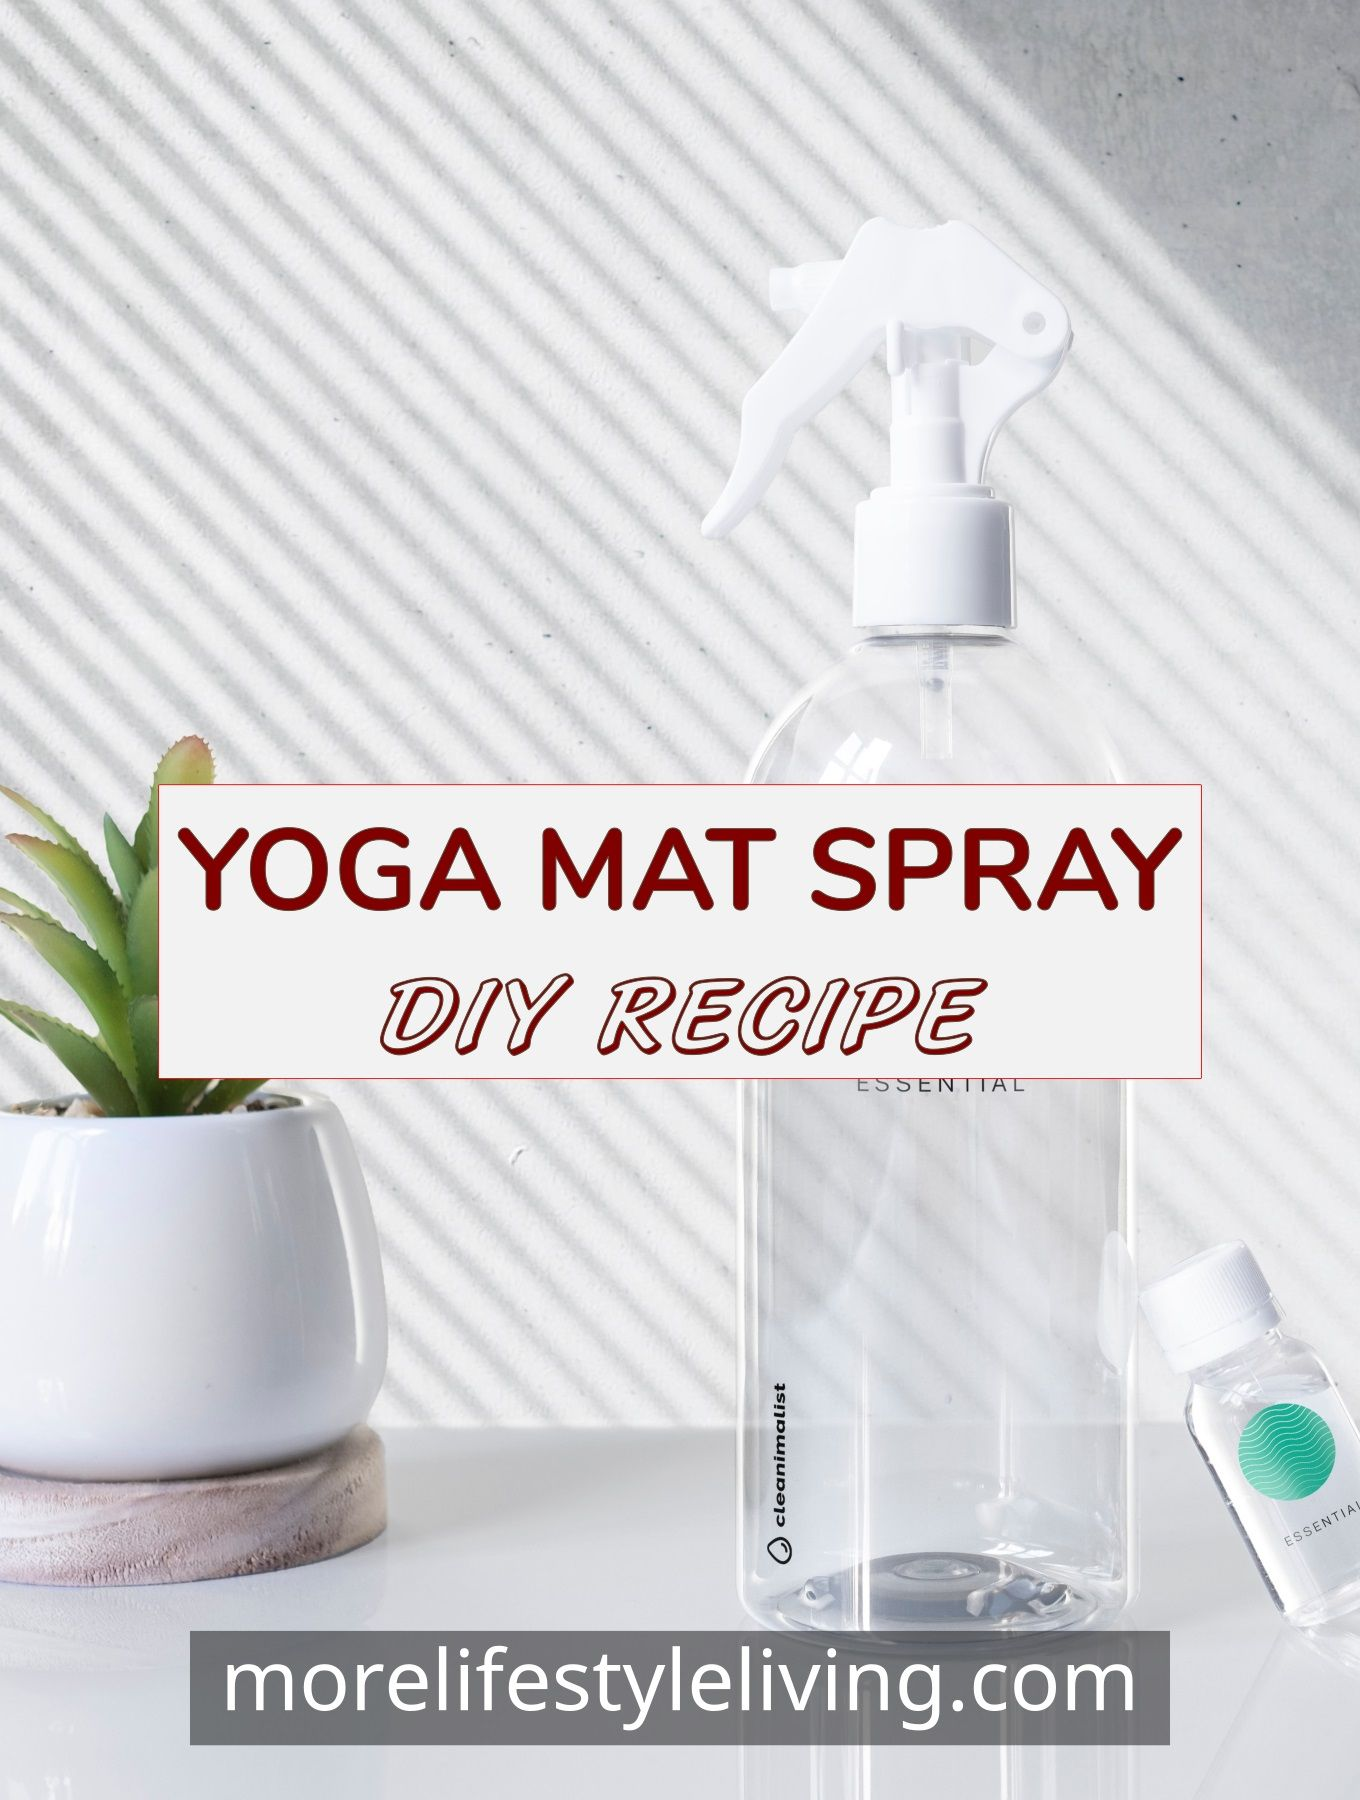 Clean off your Yoga mat with Natural DIY spray. This recipe is quick and easy to make and can make your yoga practice more refreshing. #morelifestyleliving